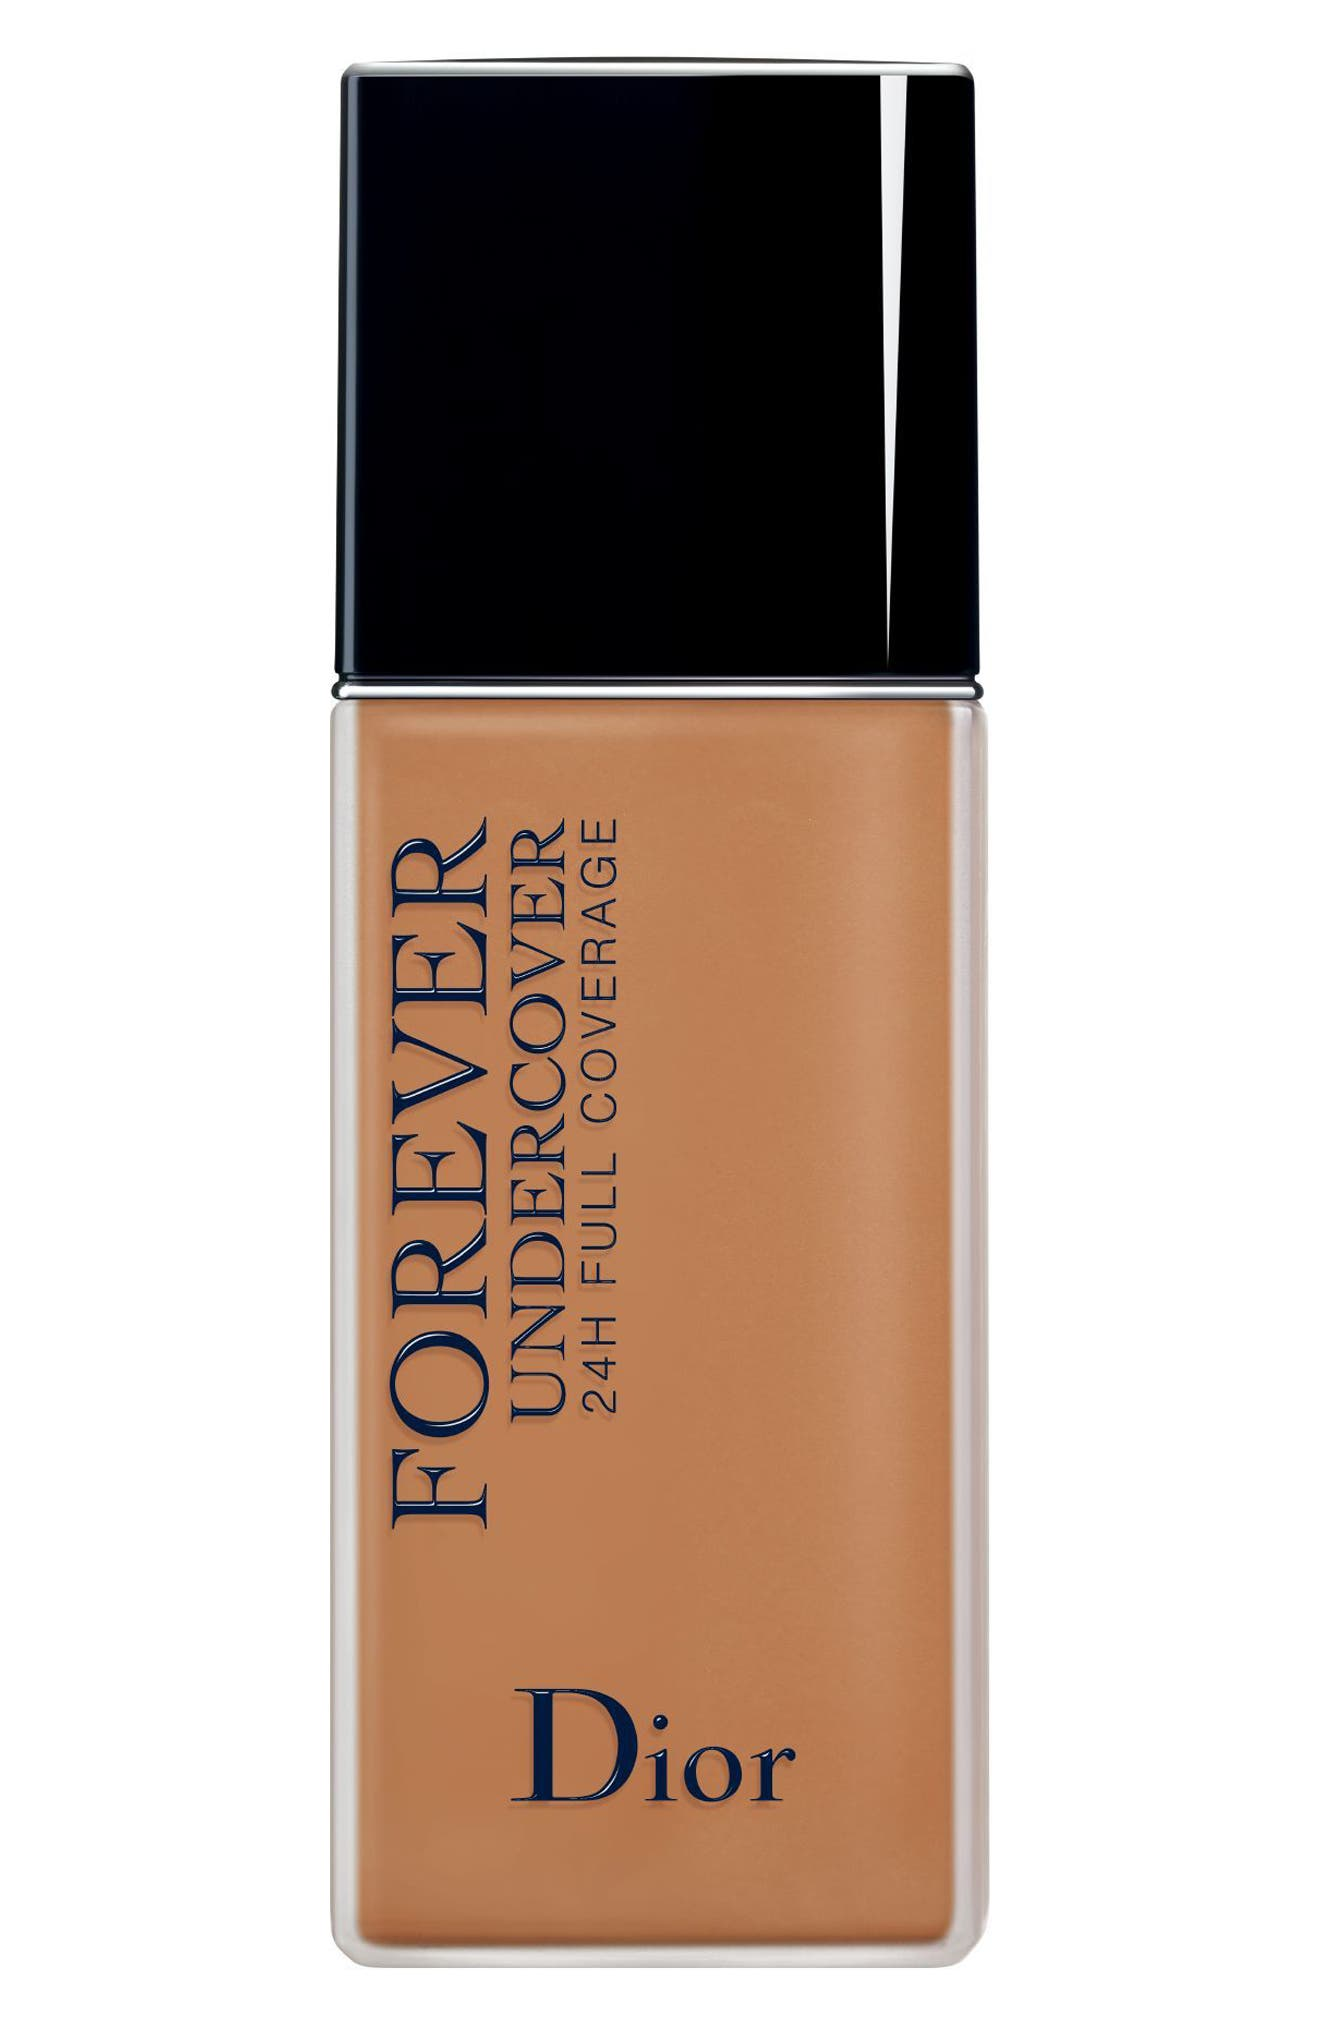 DIOR Diorskin Forever Undercover 24-Hour Full Coverage Water-Based Foundation, Main, color, 051 PRALINE